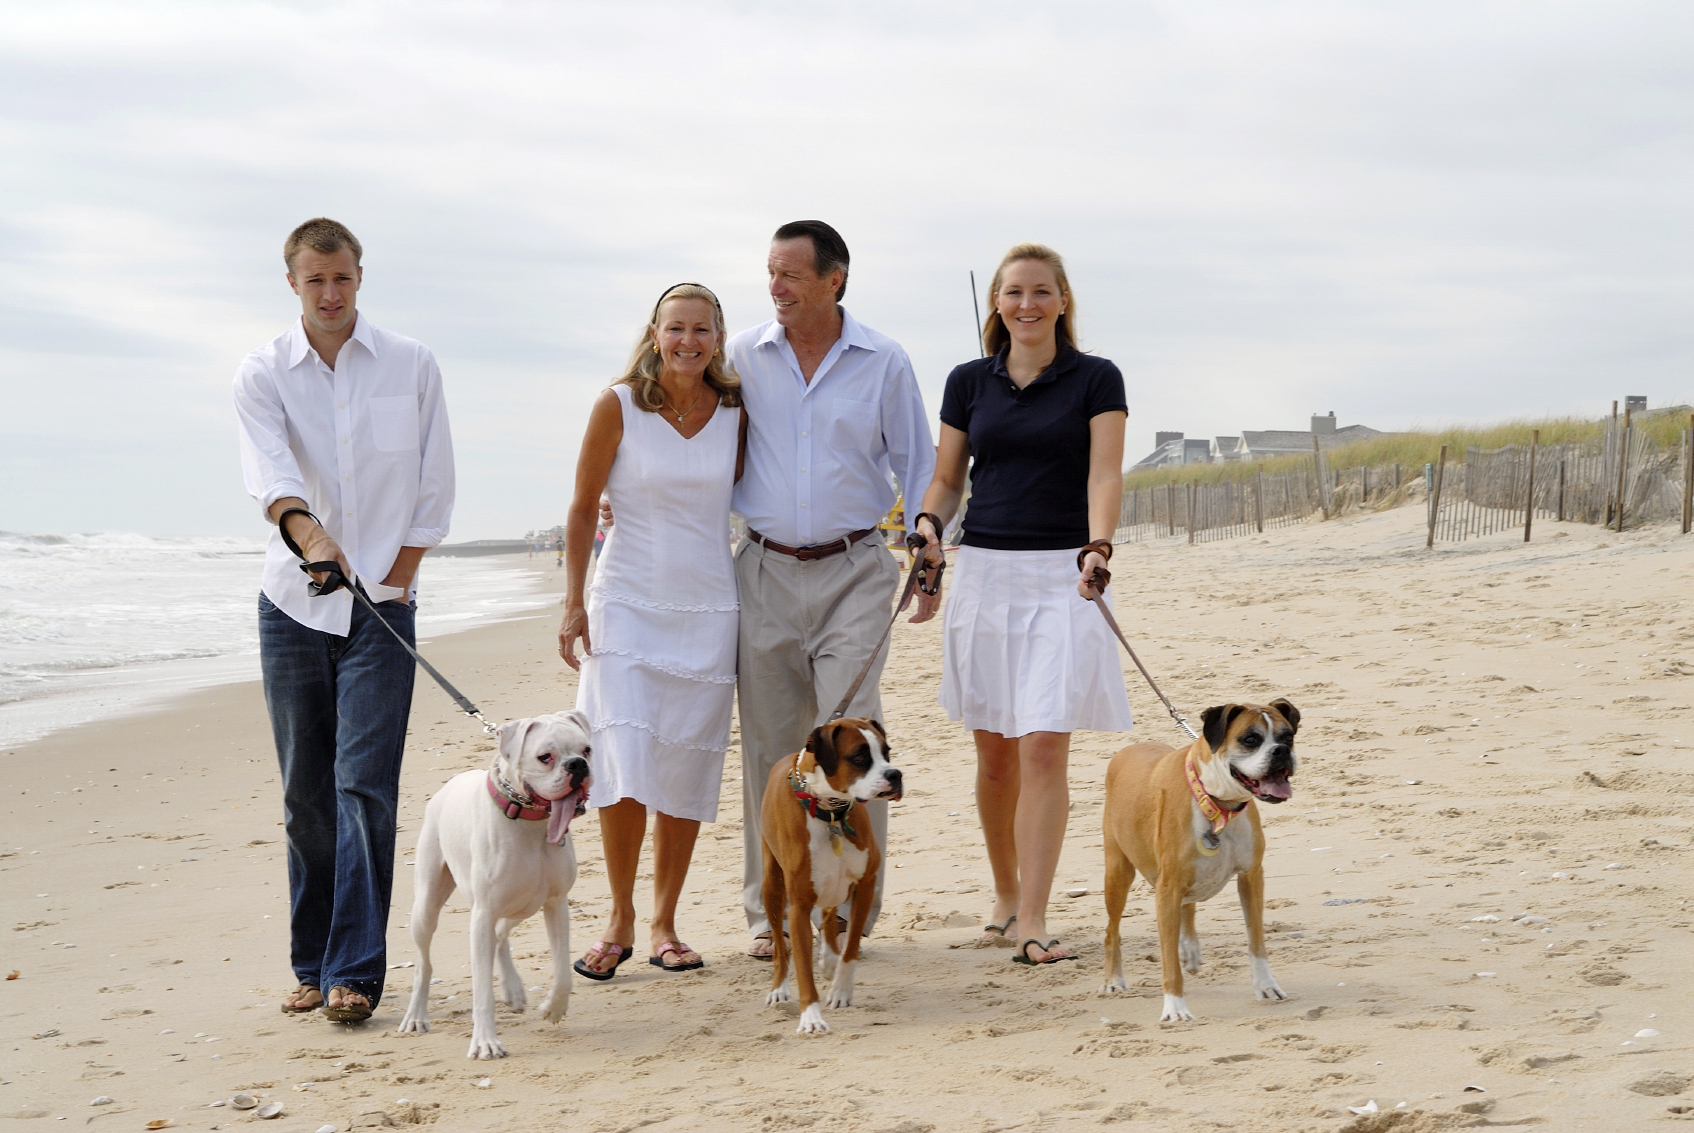 two couples walking their dogs on the beach